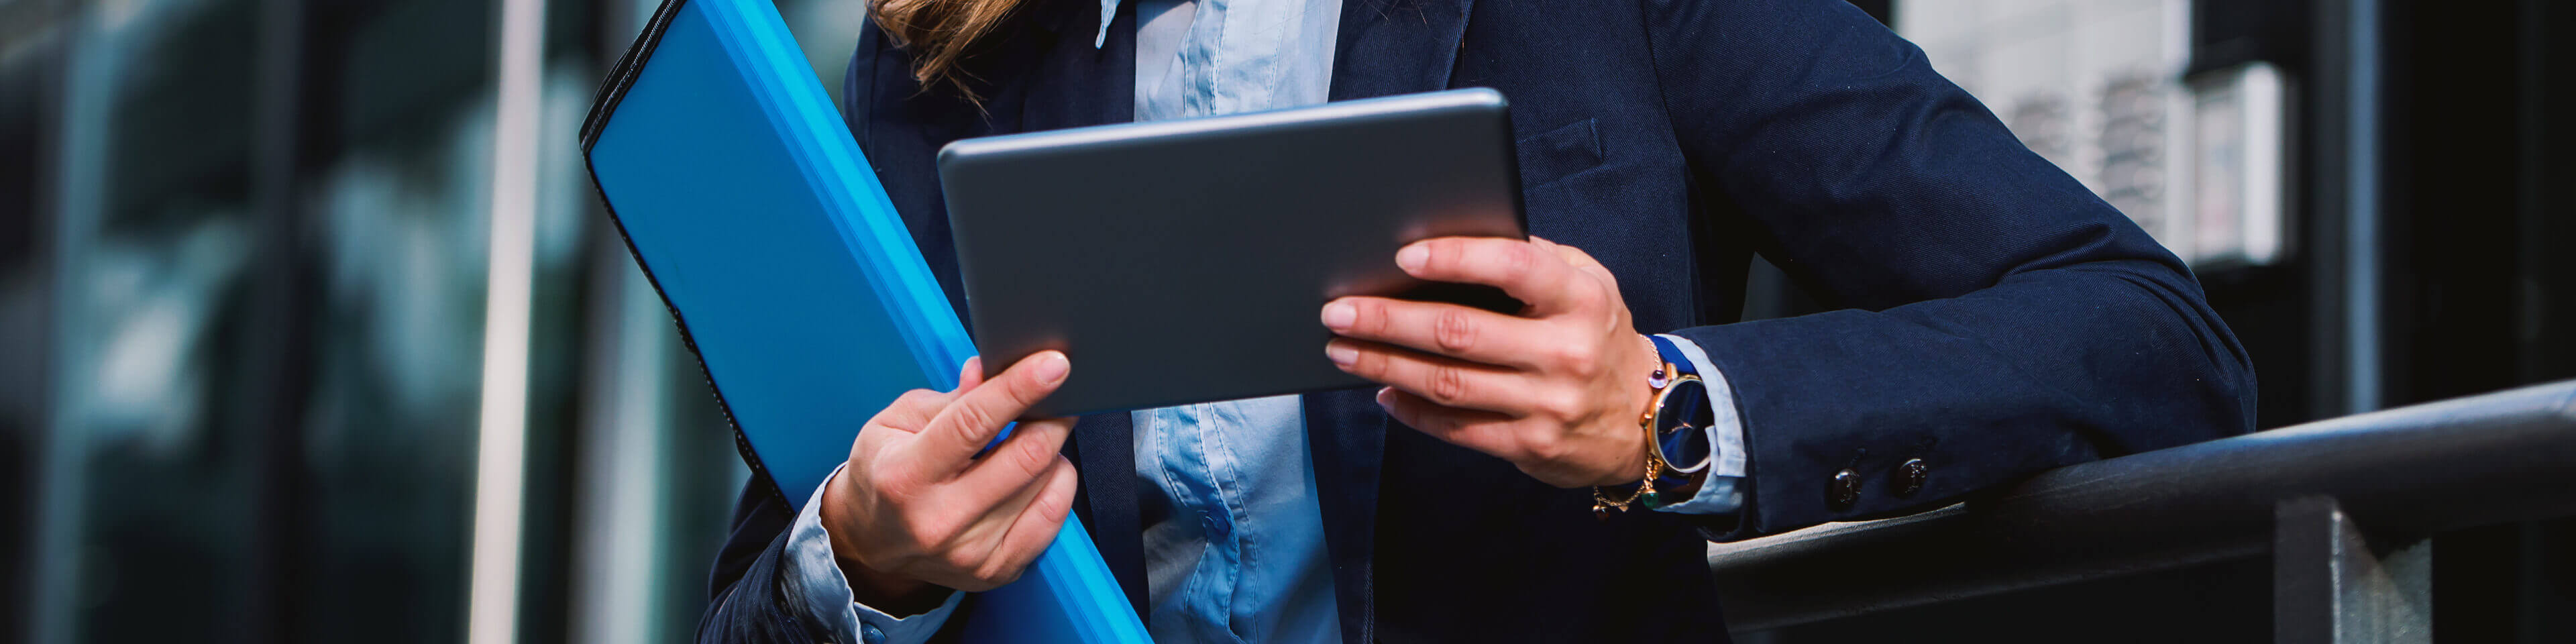 woman in business attire outside holding a tablet